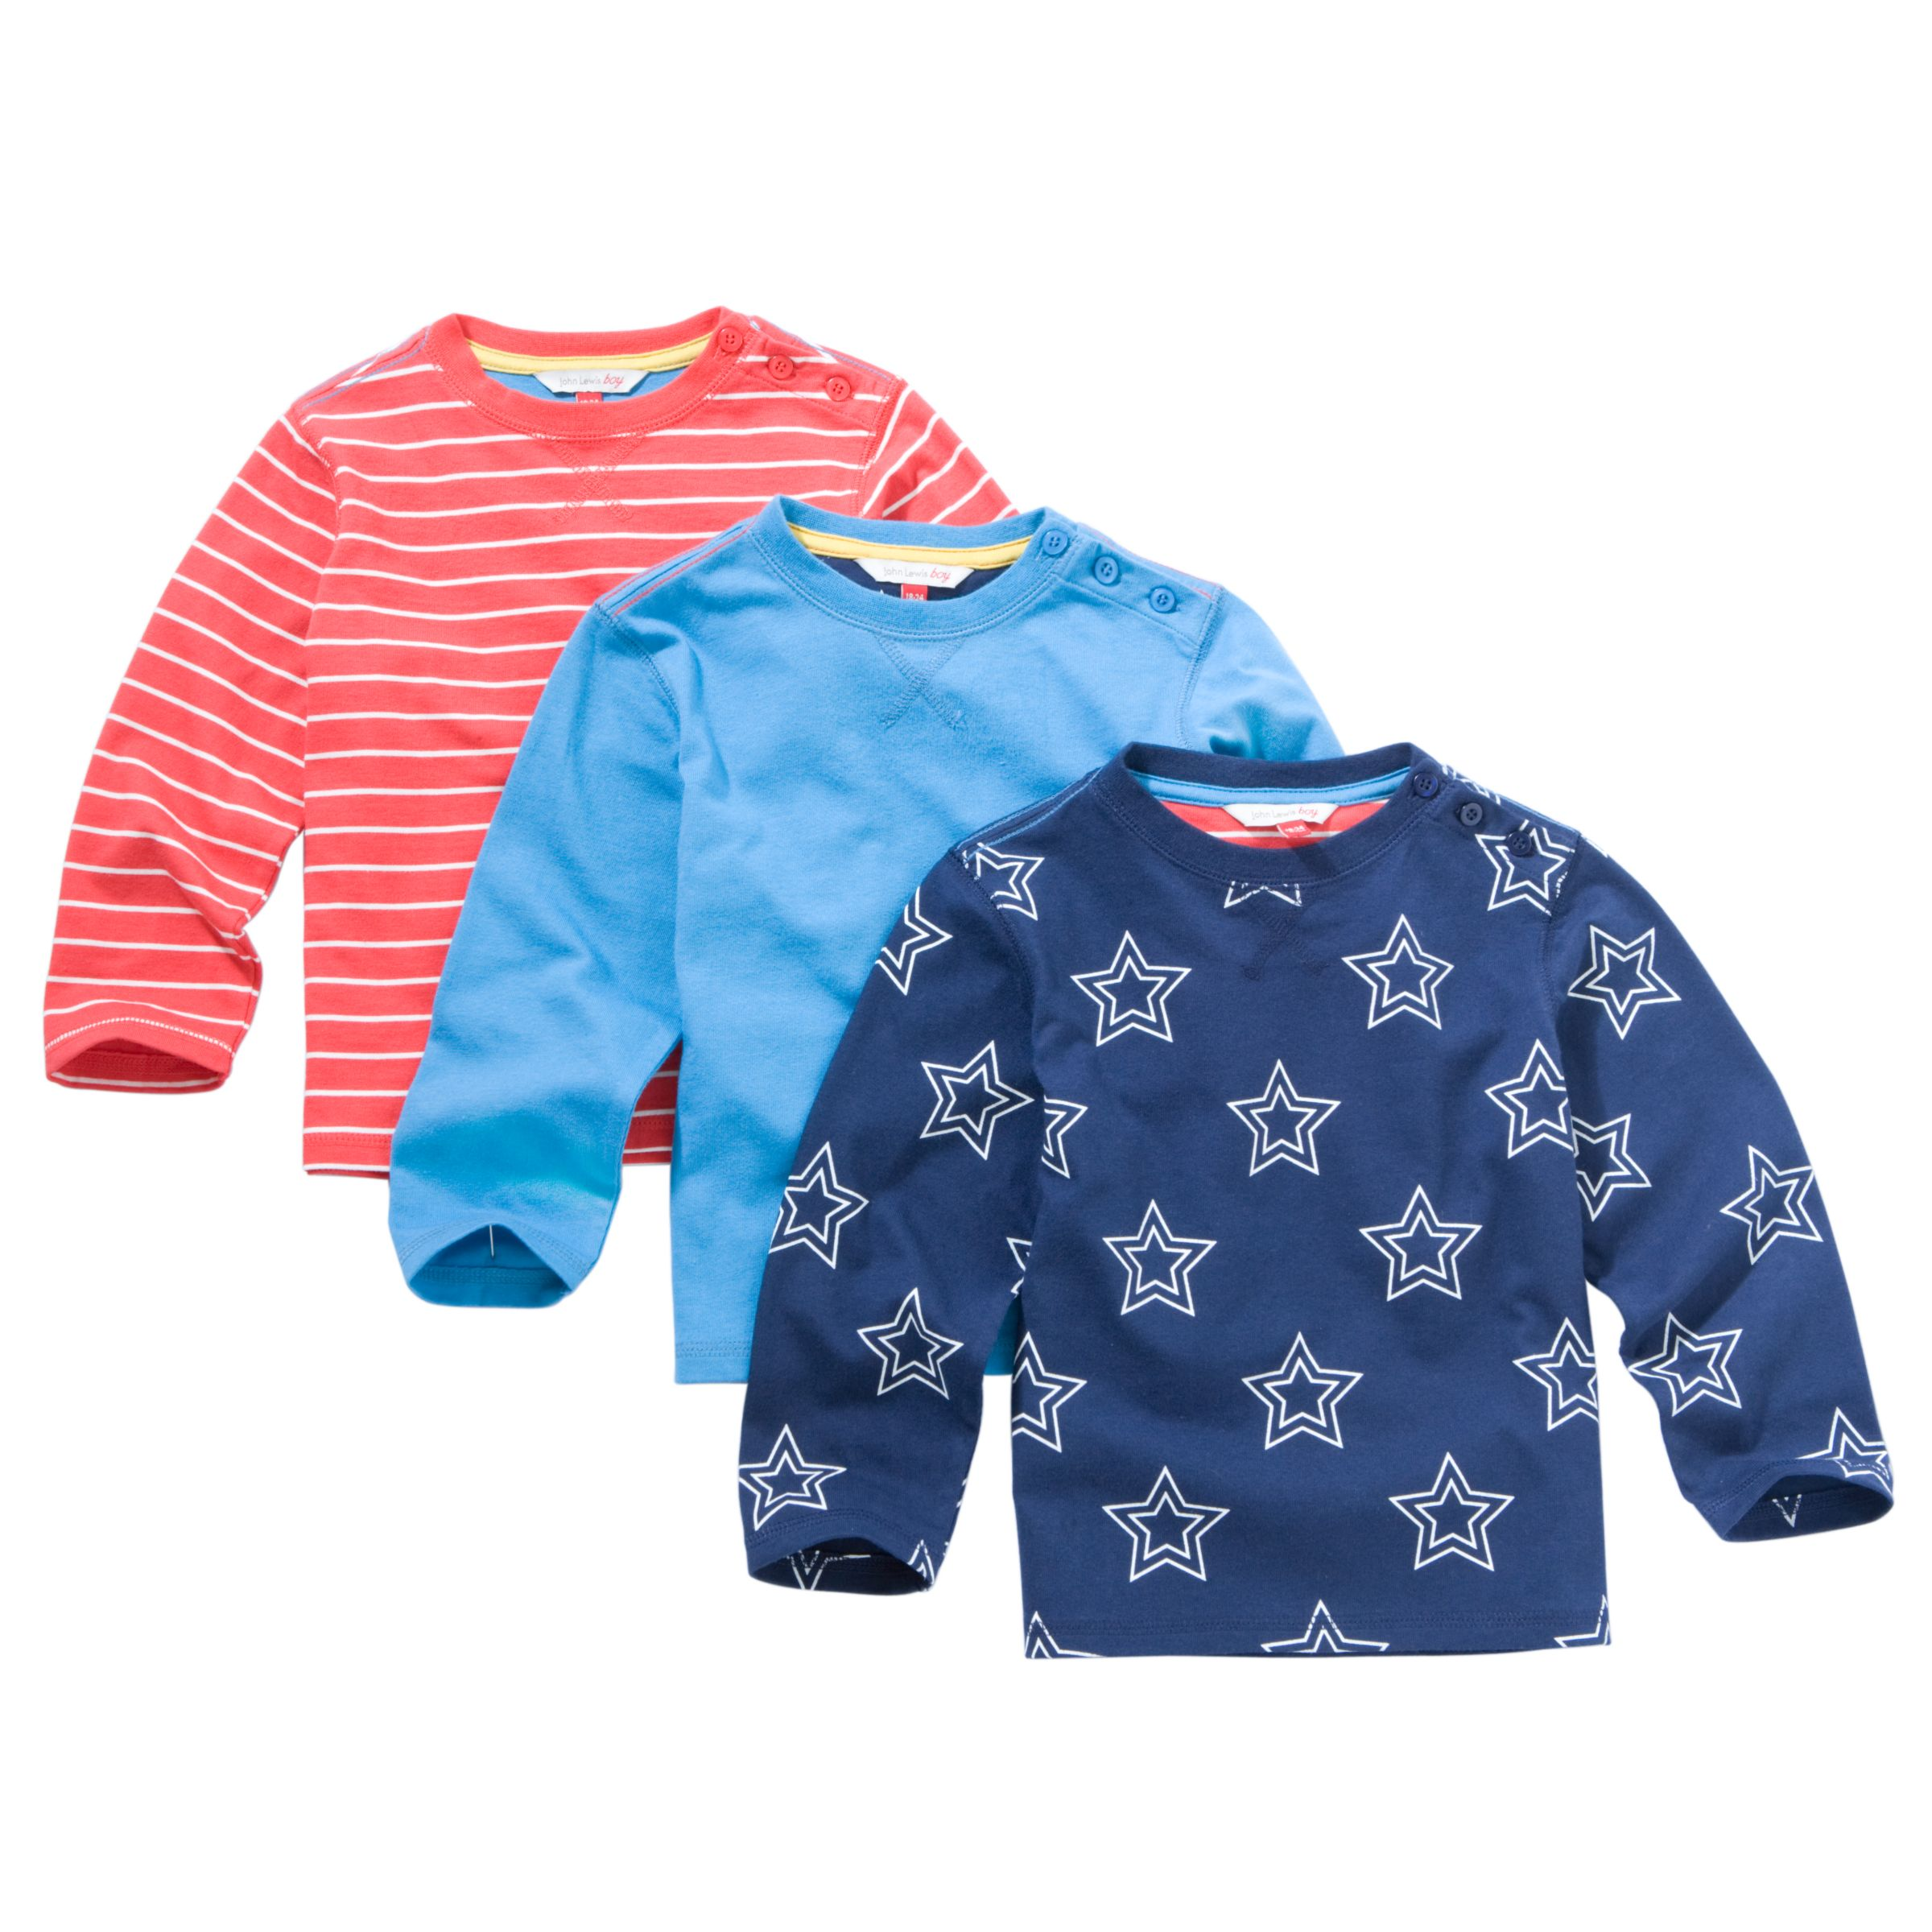 Star T-Shirt, Pack of 3,